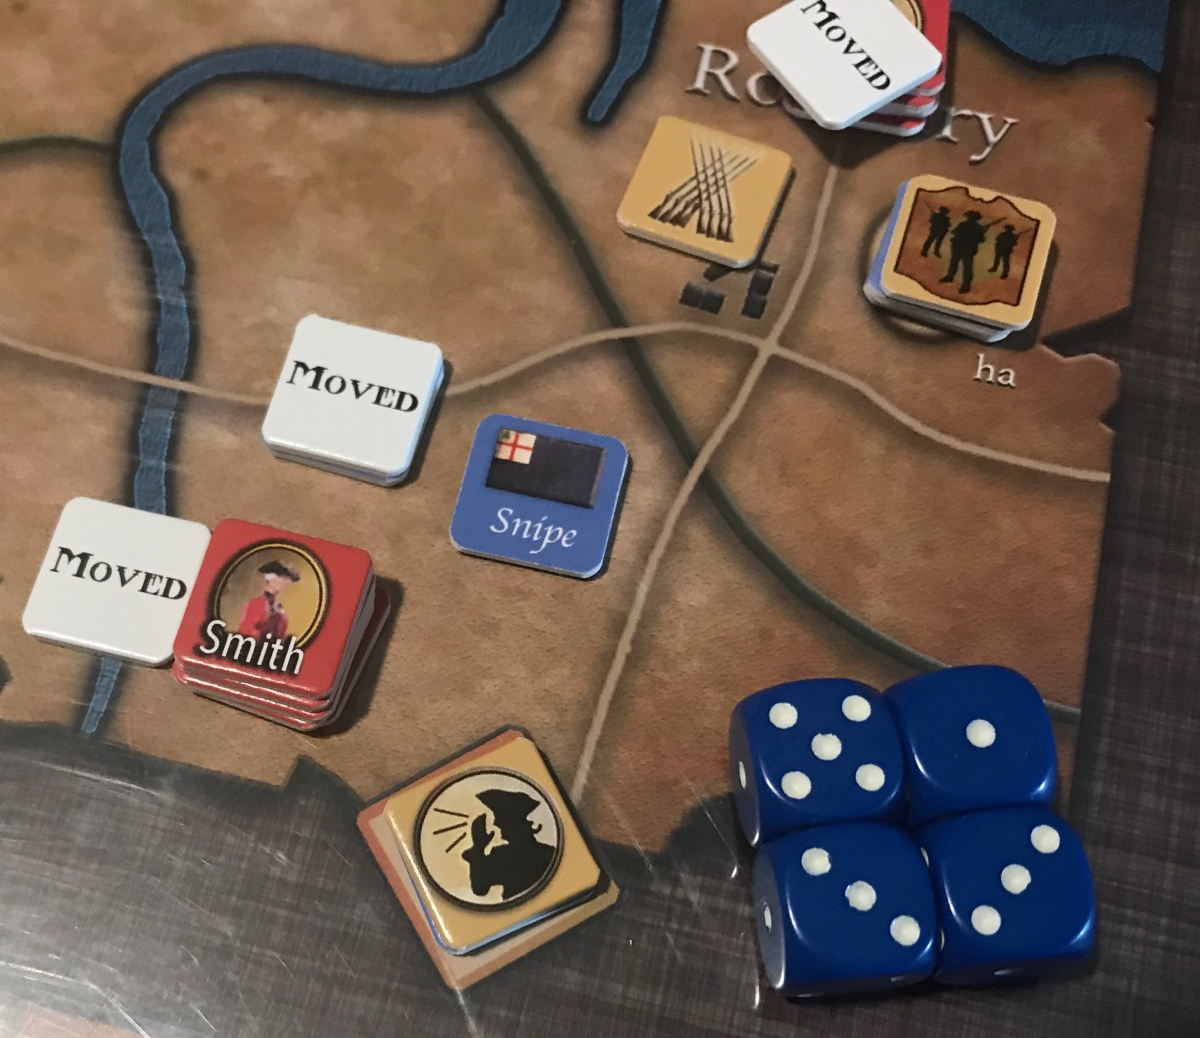 Revolution Road From Boston To Concord Compass Games Action Electrical Wiring Point 3 The Players Aid